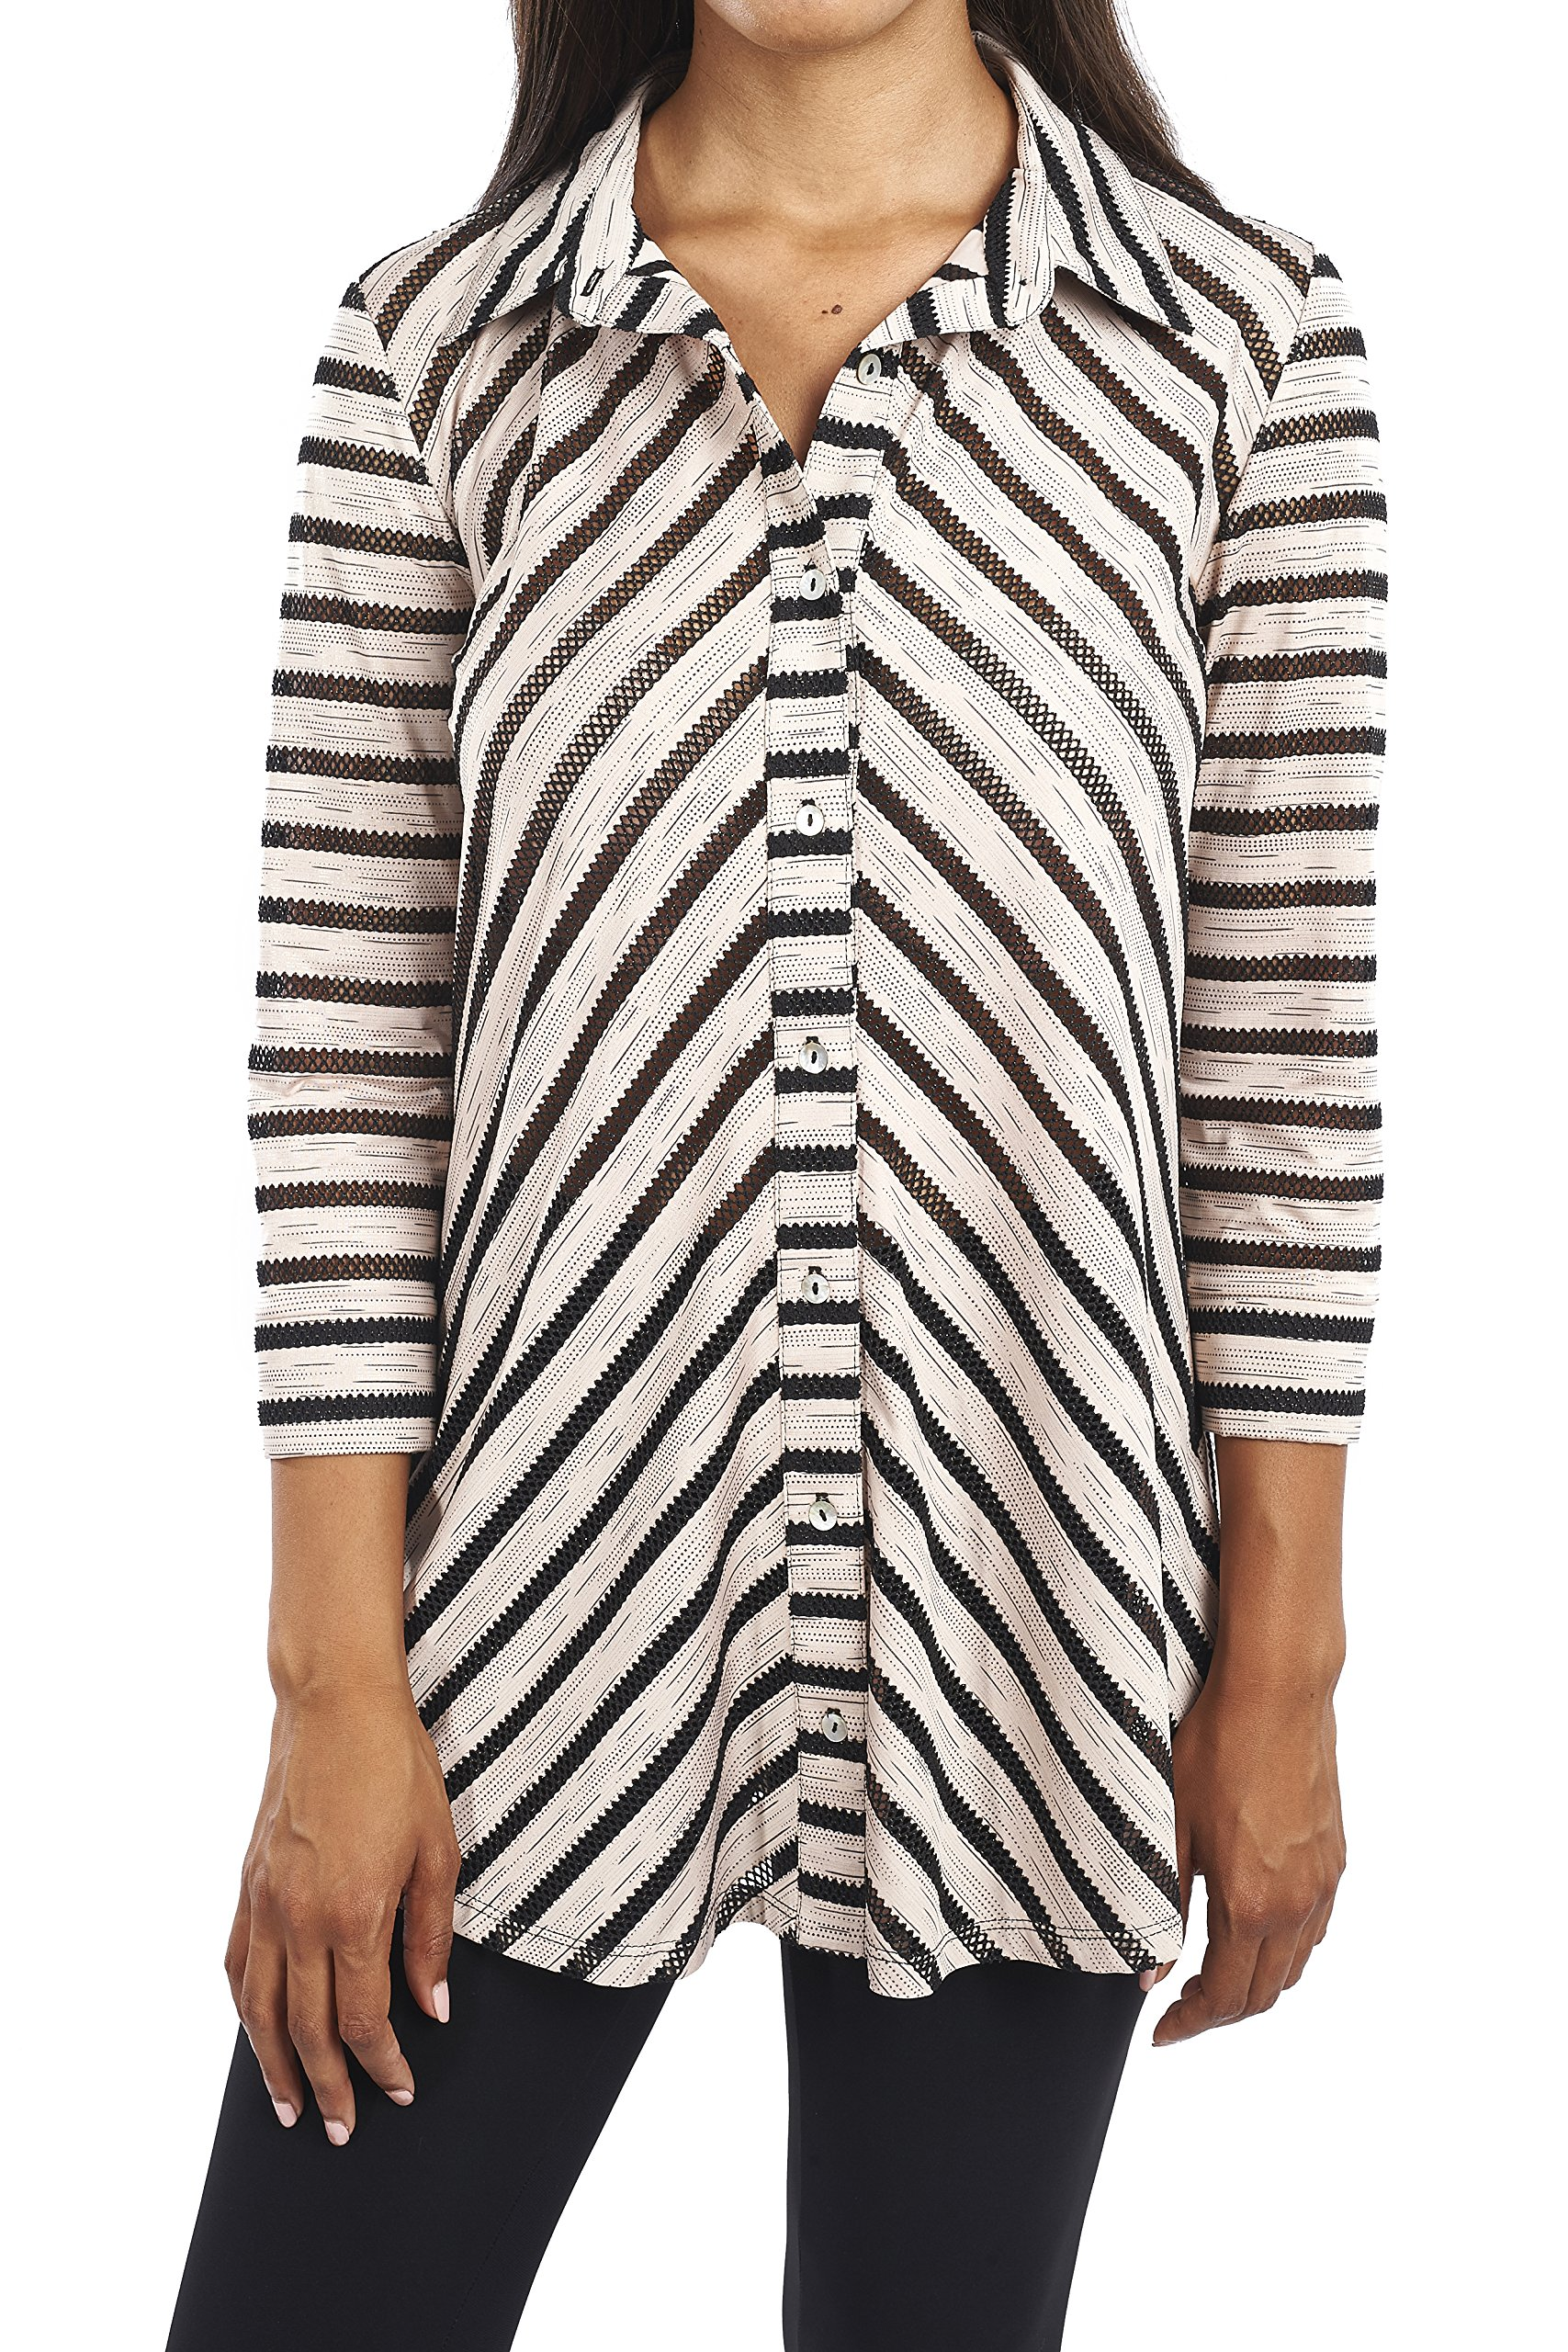 Joseph Ribkoff Button Front Striped Tunic Style 163920 Size 18 by Joseph Ribkoff